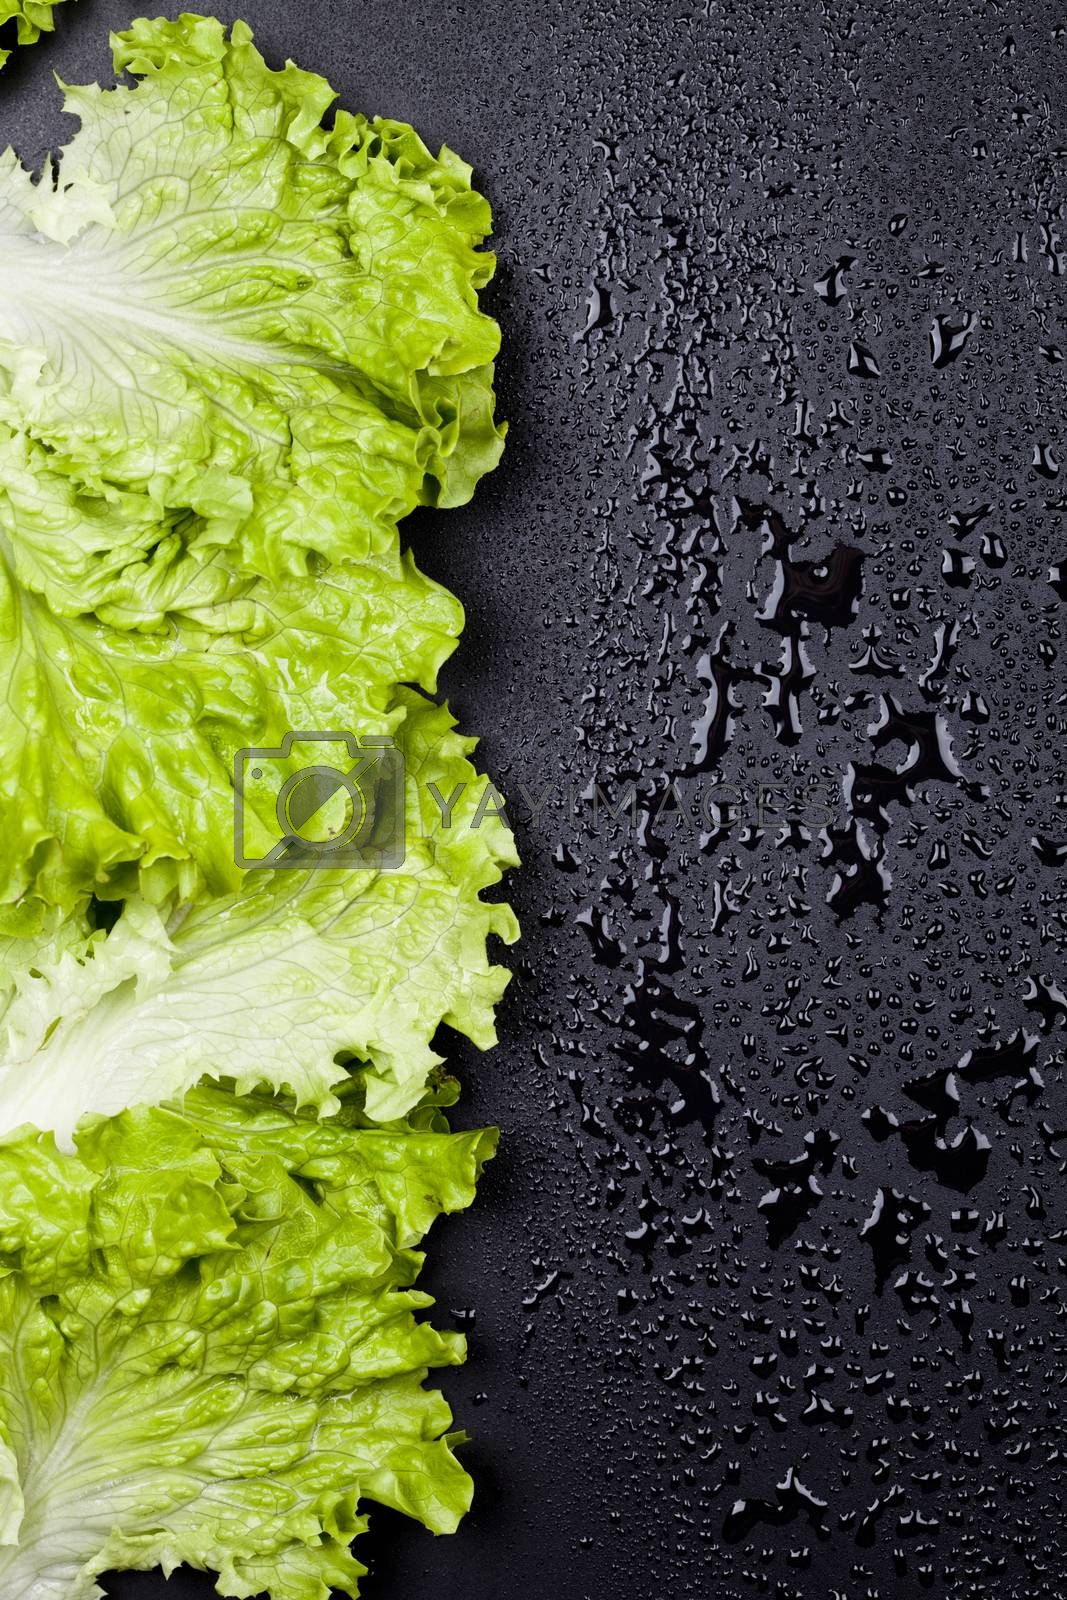 Green organic lettuce salad leaves frame on wet black background. Top view on black background vith copy space.